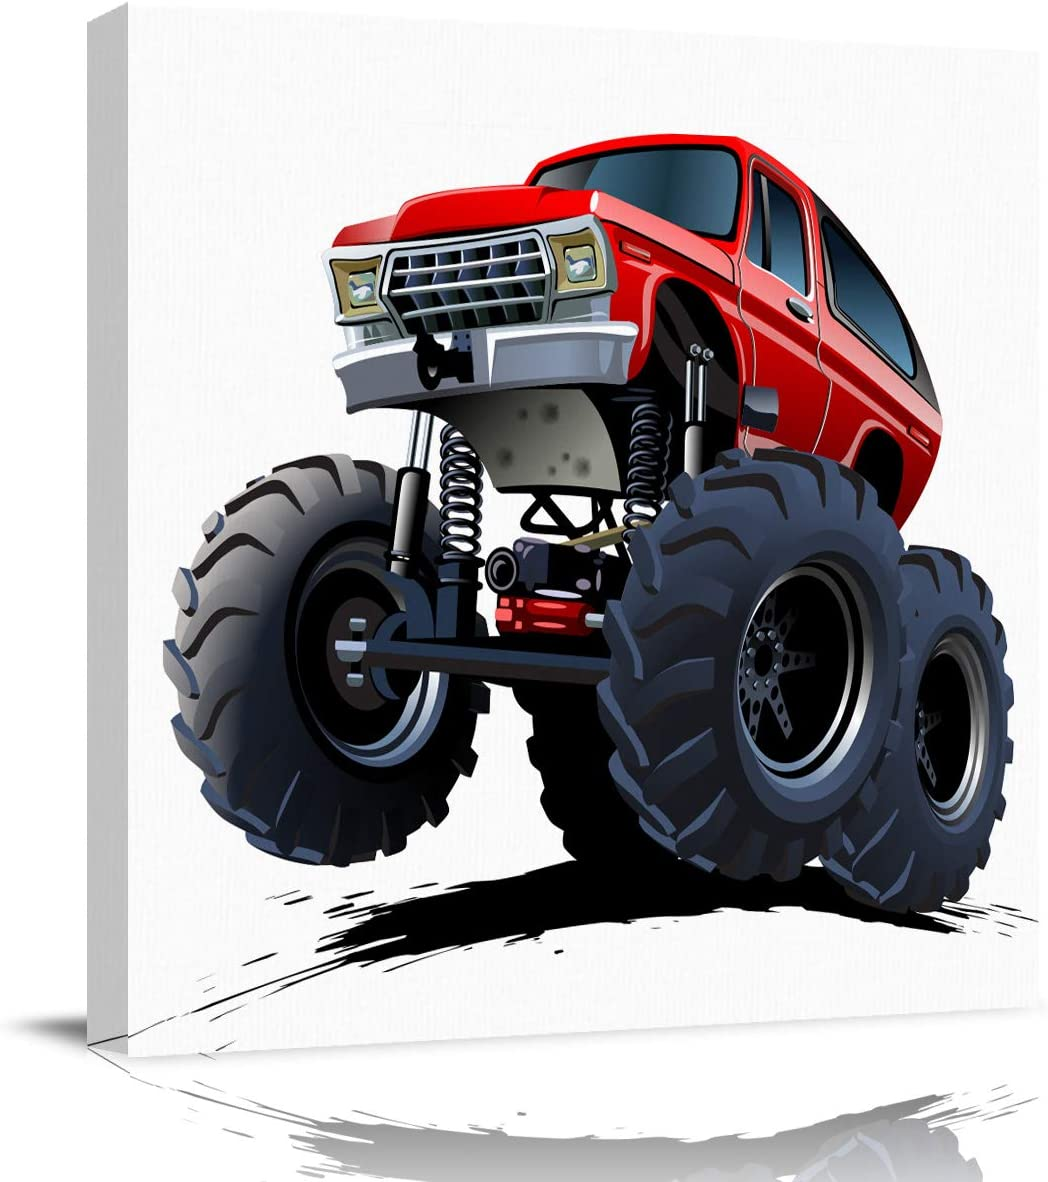 EZON-CH Square Wall Art Canvas Oil Painting, Cartoon Monster Truck Office Artworks for Bedroom Living Room Bathroom Home Decor, Stretched and Wooden Framed Ready to Hang, 12x12 Inch